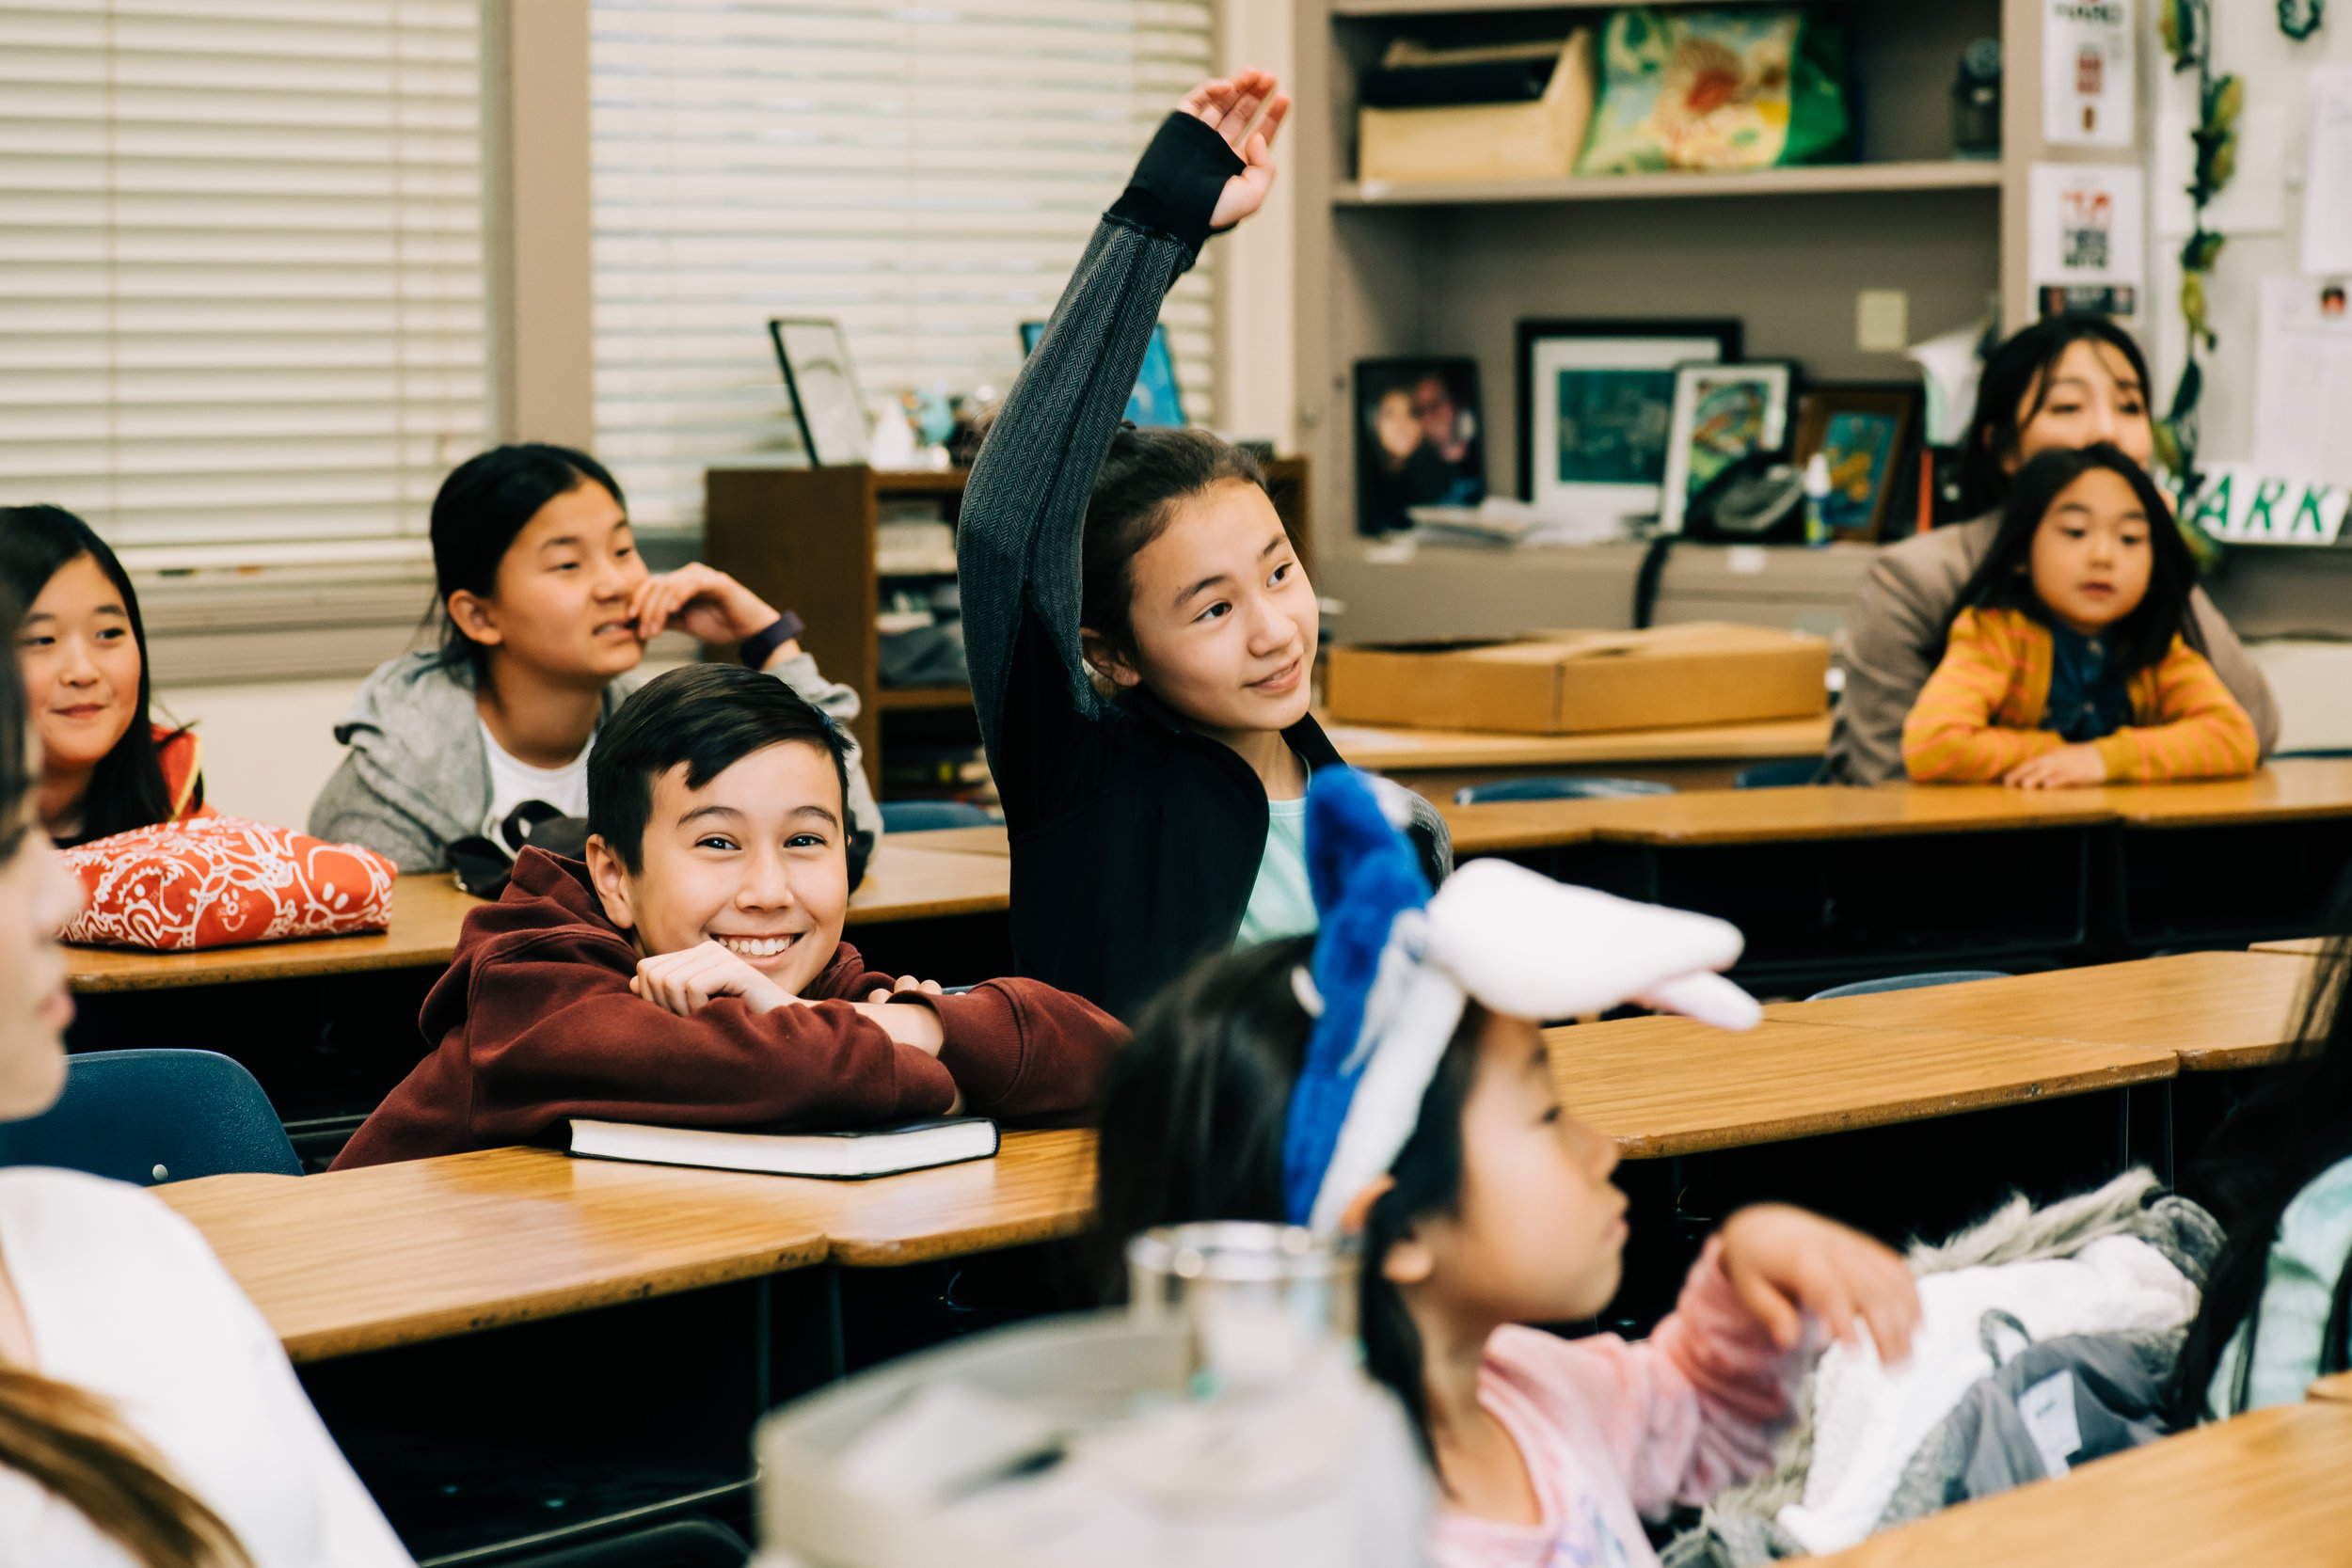 Upper elementary schoolers will go beyond Bible stories into actual biblical concepts and principles that shape their faith. Our teachers will help guide third, fourth, and fifth graders to apply the things they learn into their everyday lives.